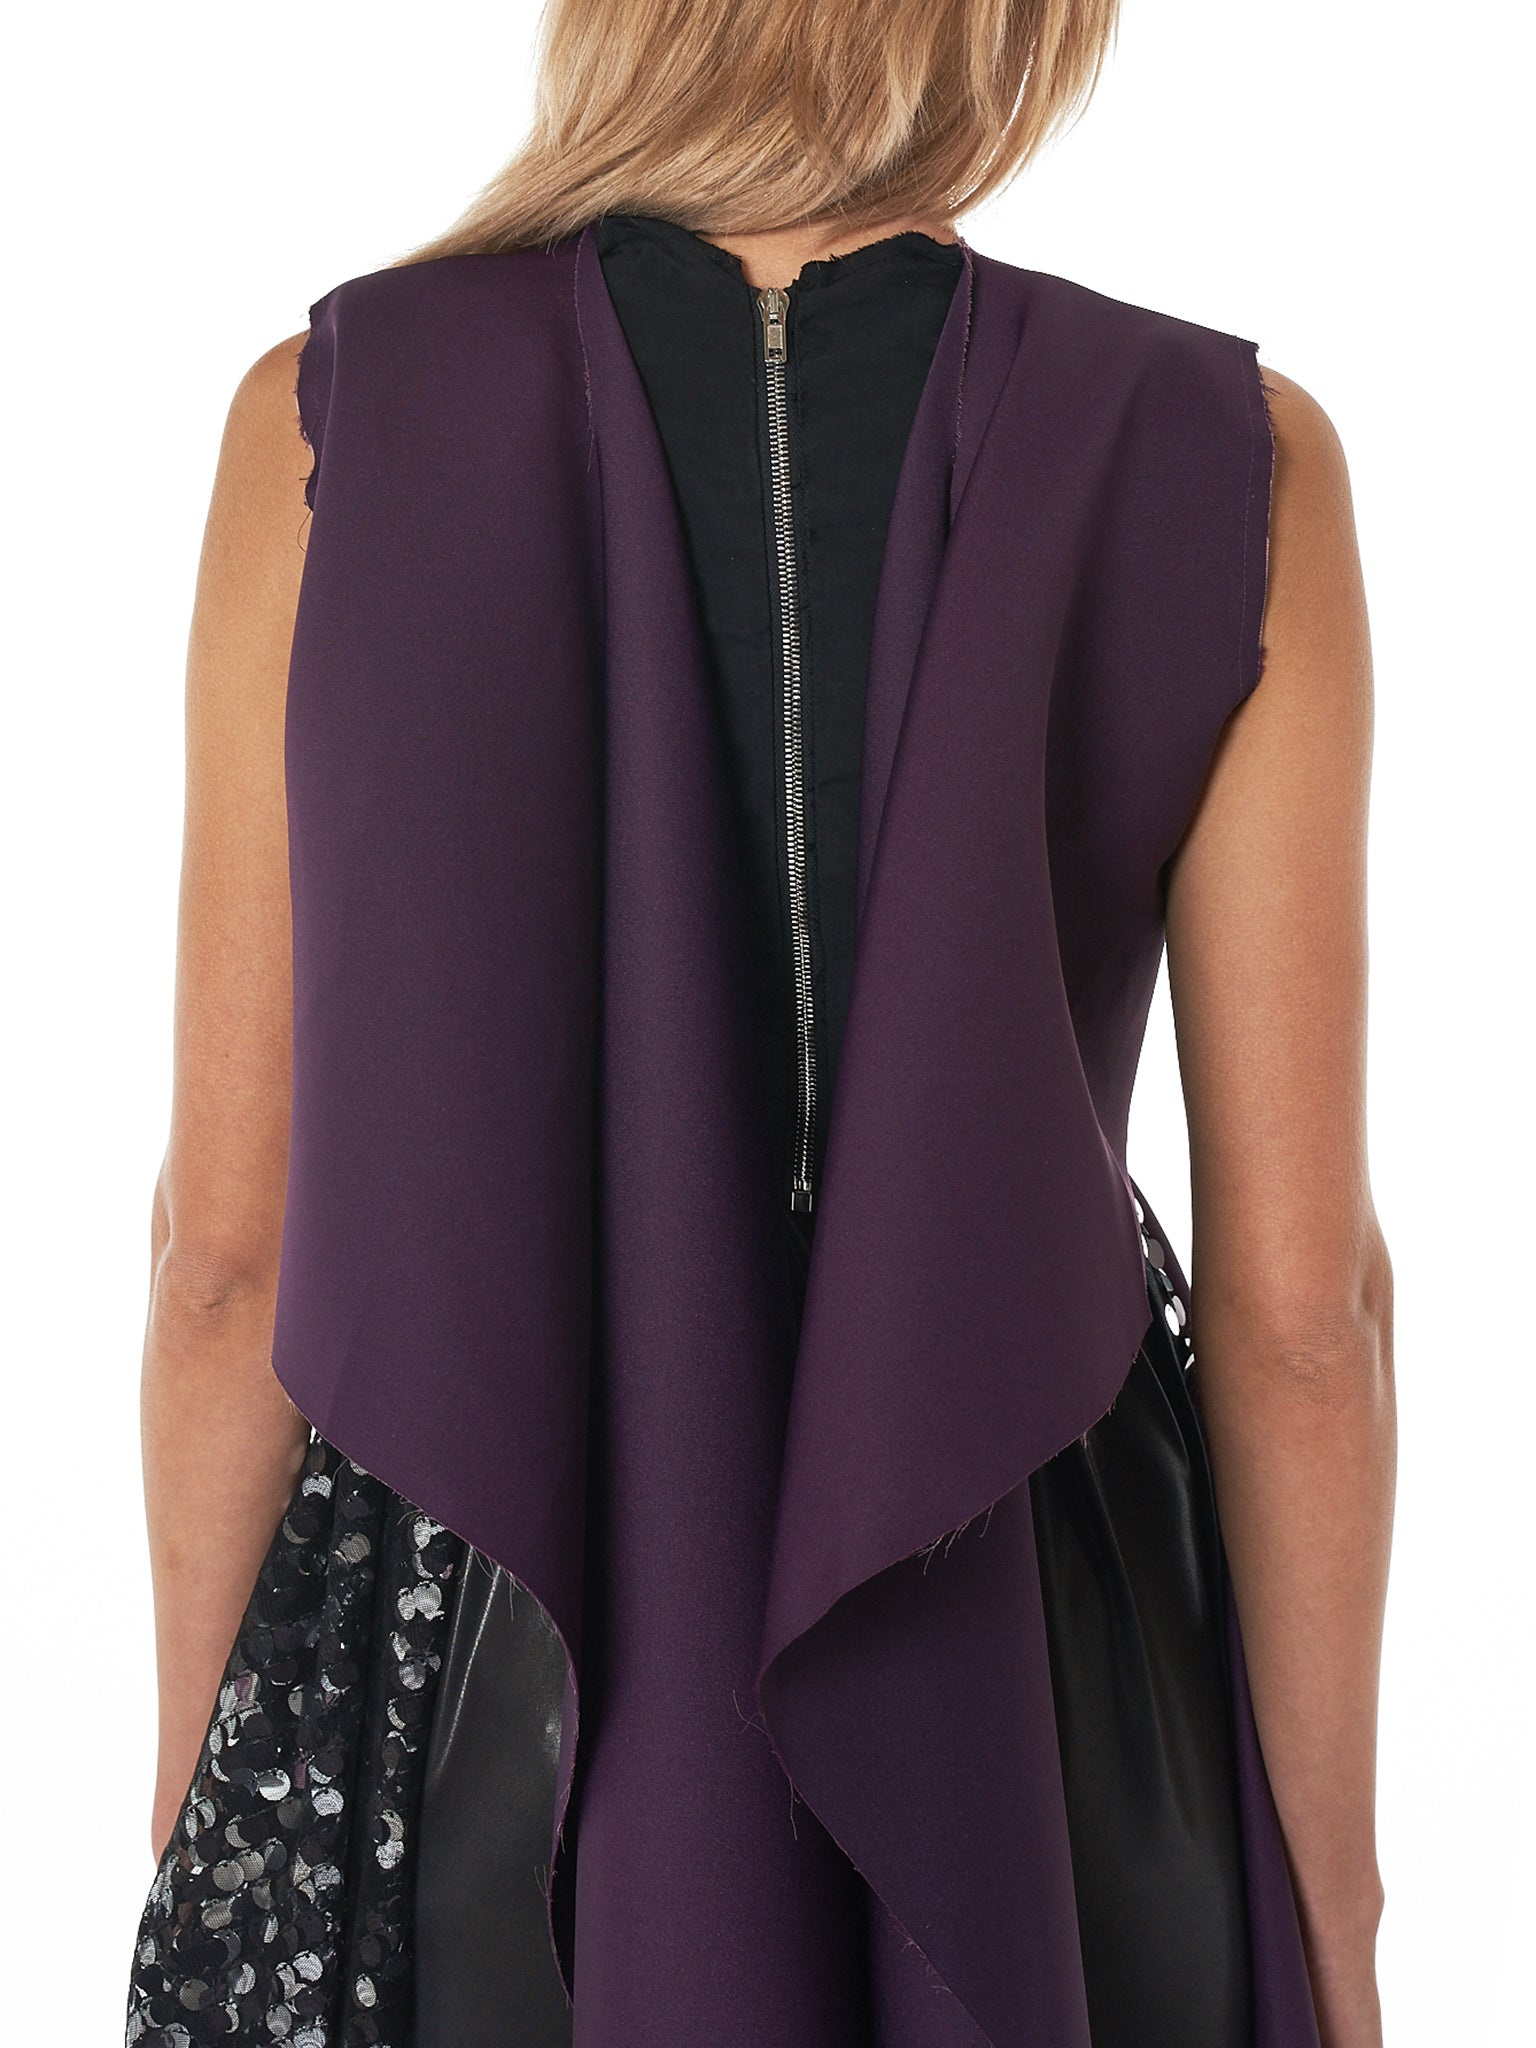 'Ghost' Sleeveless Top (F1150-DARK-PURPLE)